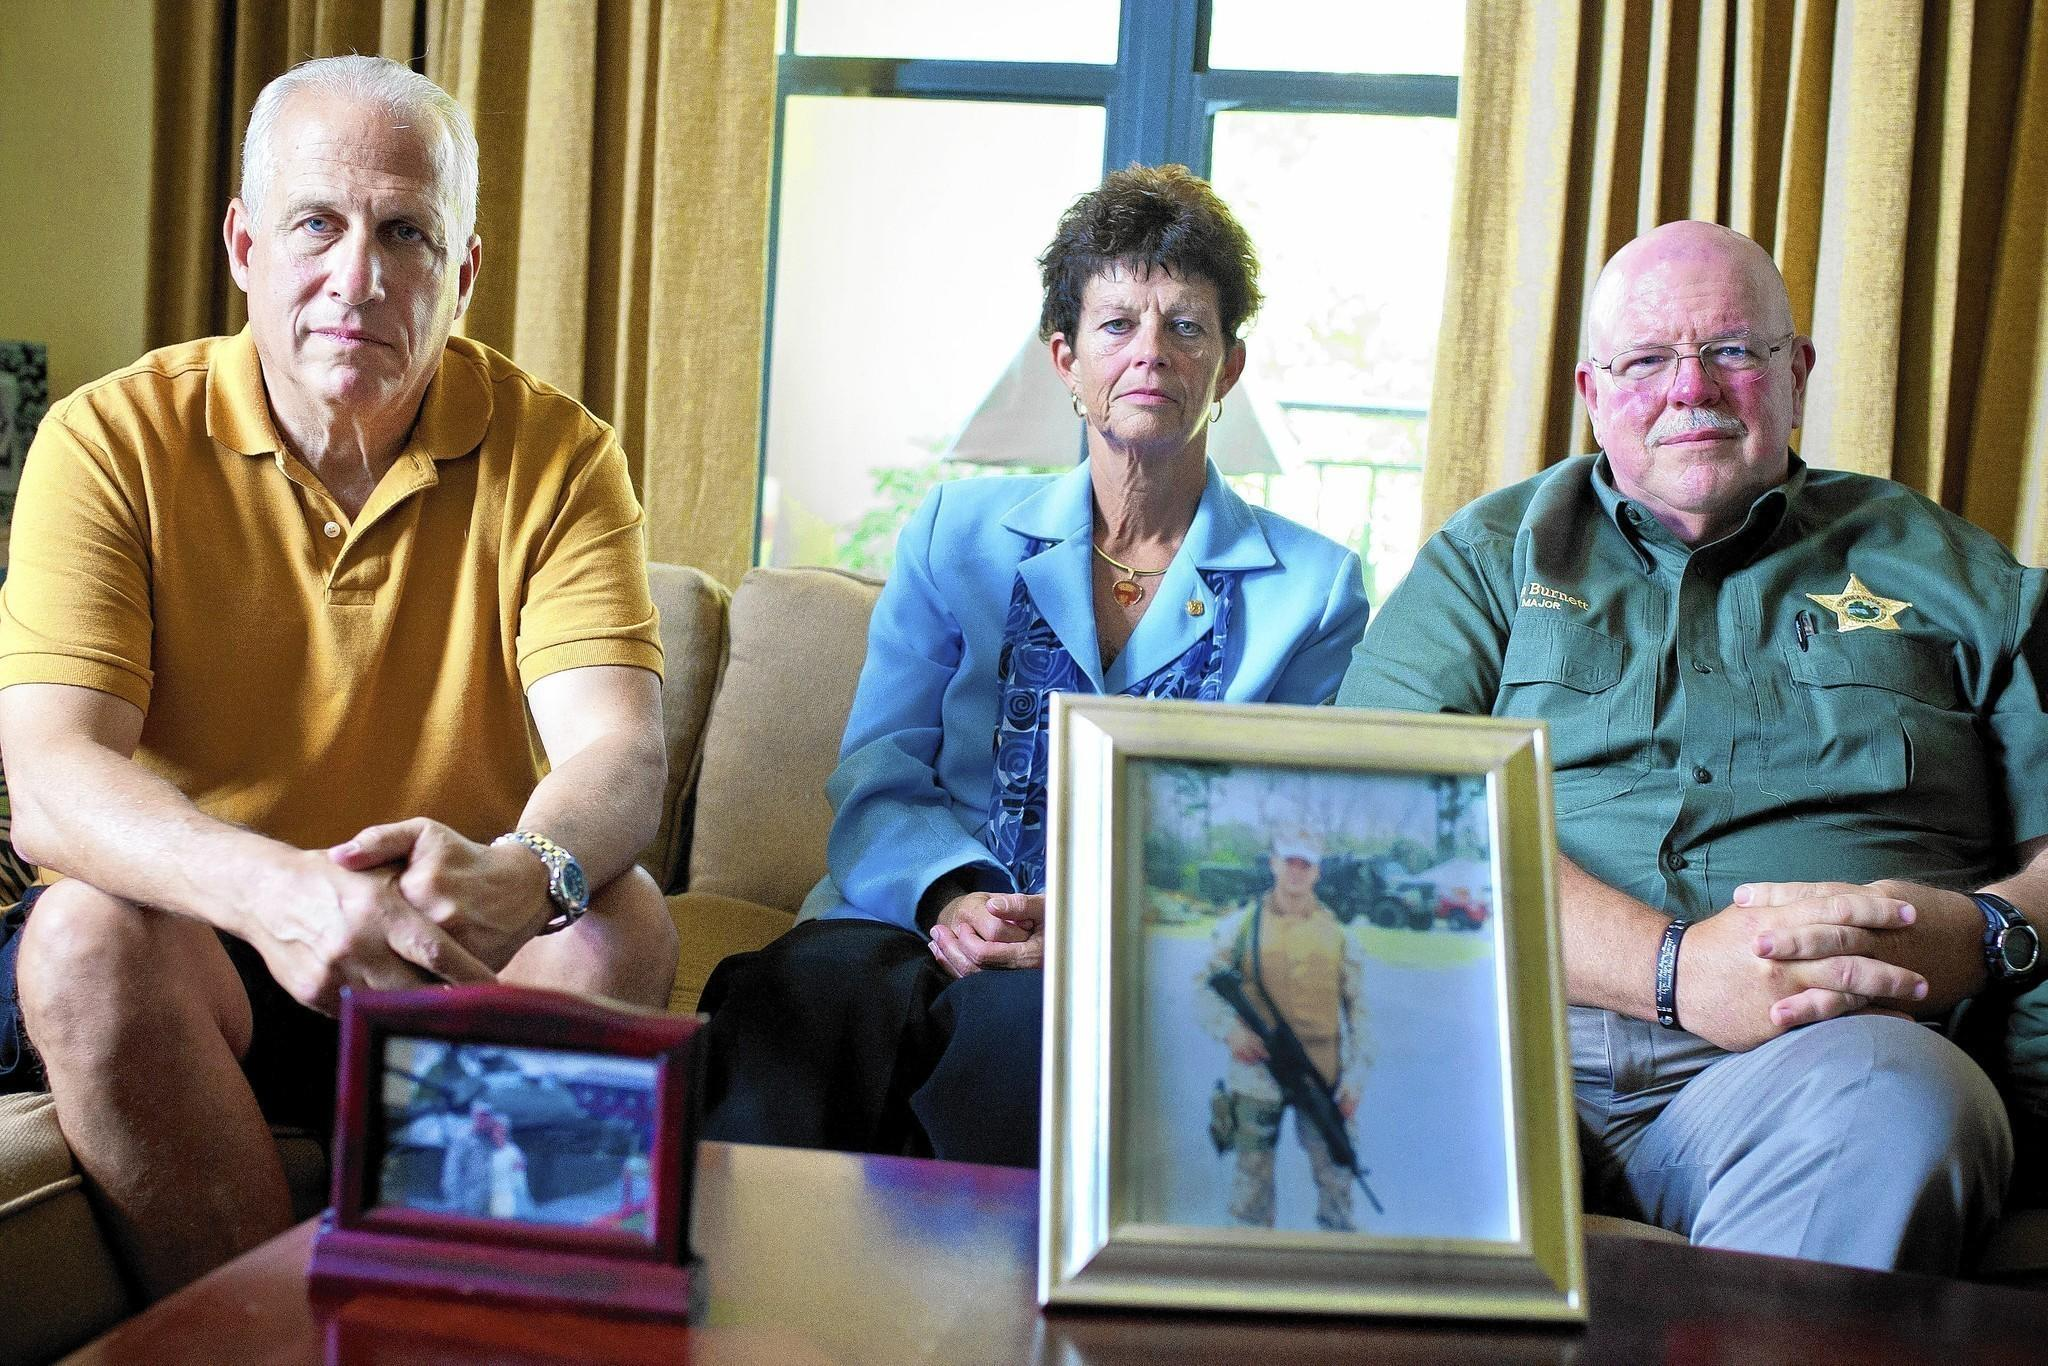 Greg LiCalzi, left, father of Lt. Mike LiCalzi, pictured below him, and Shelley and Ron Burnett, parents of Marine Lance Cpl. Jason Burnett, pictured below them. Marines Jason Burnett and Mike LiCalzi both died serving their country in Iraq in 2006.